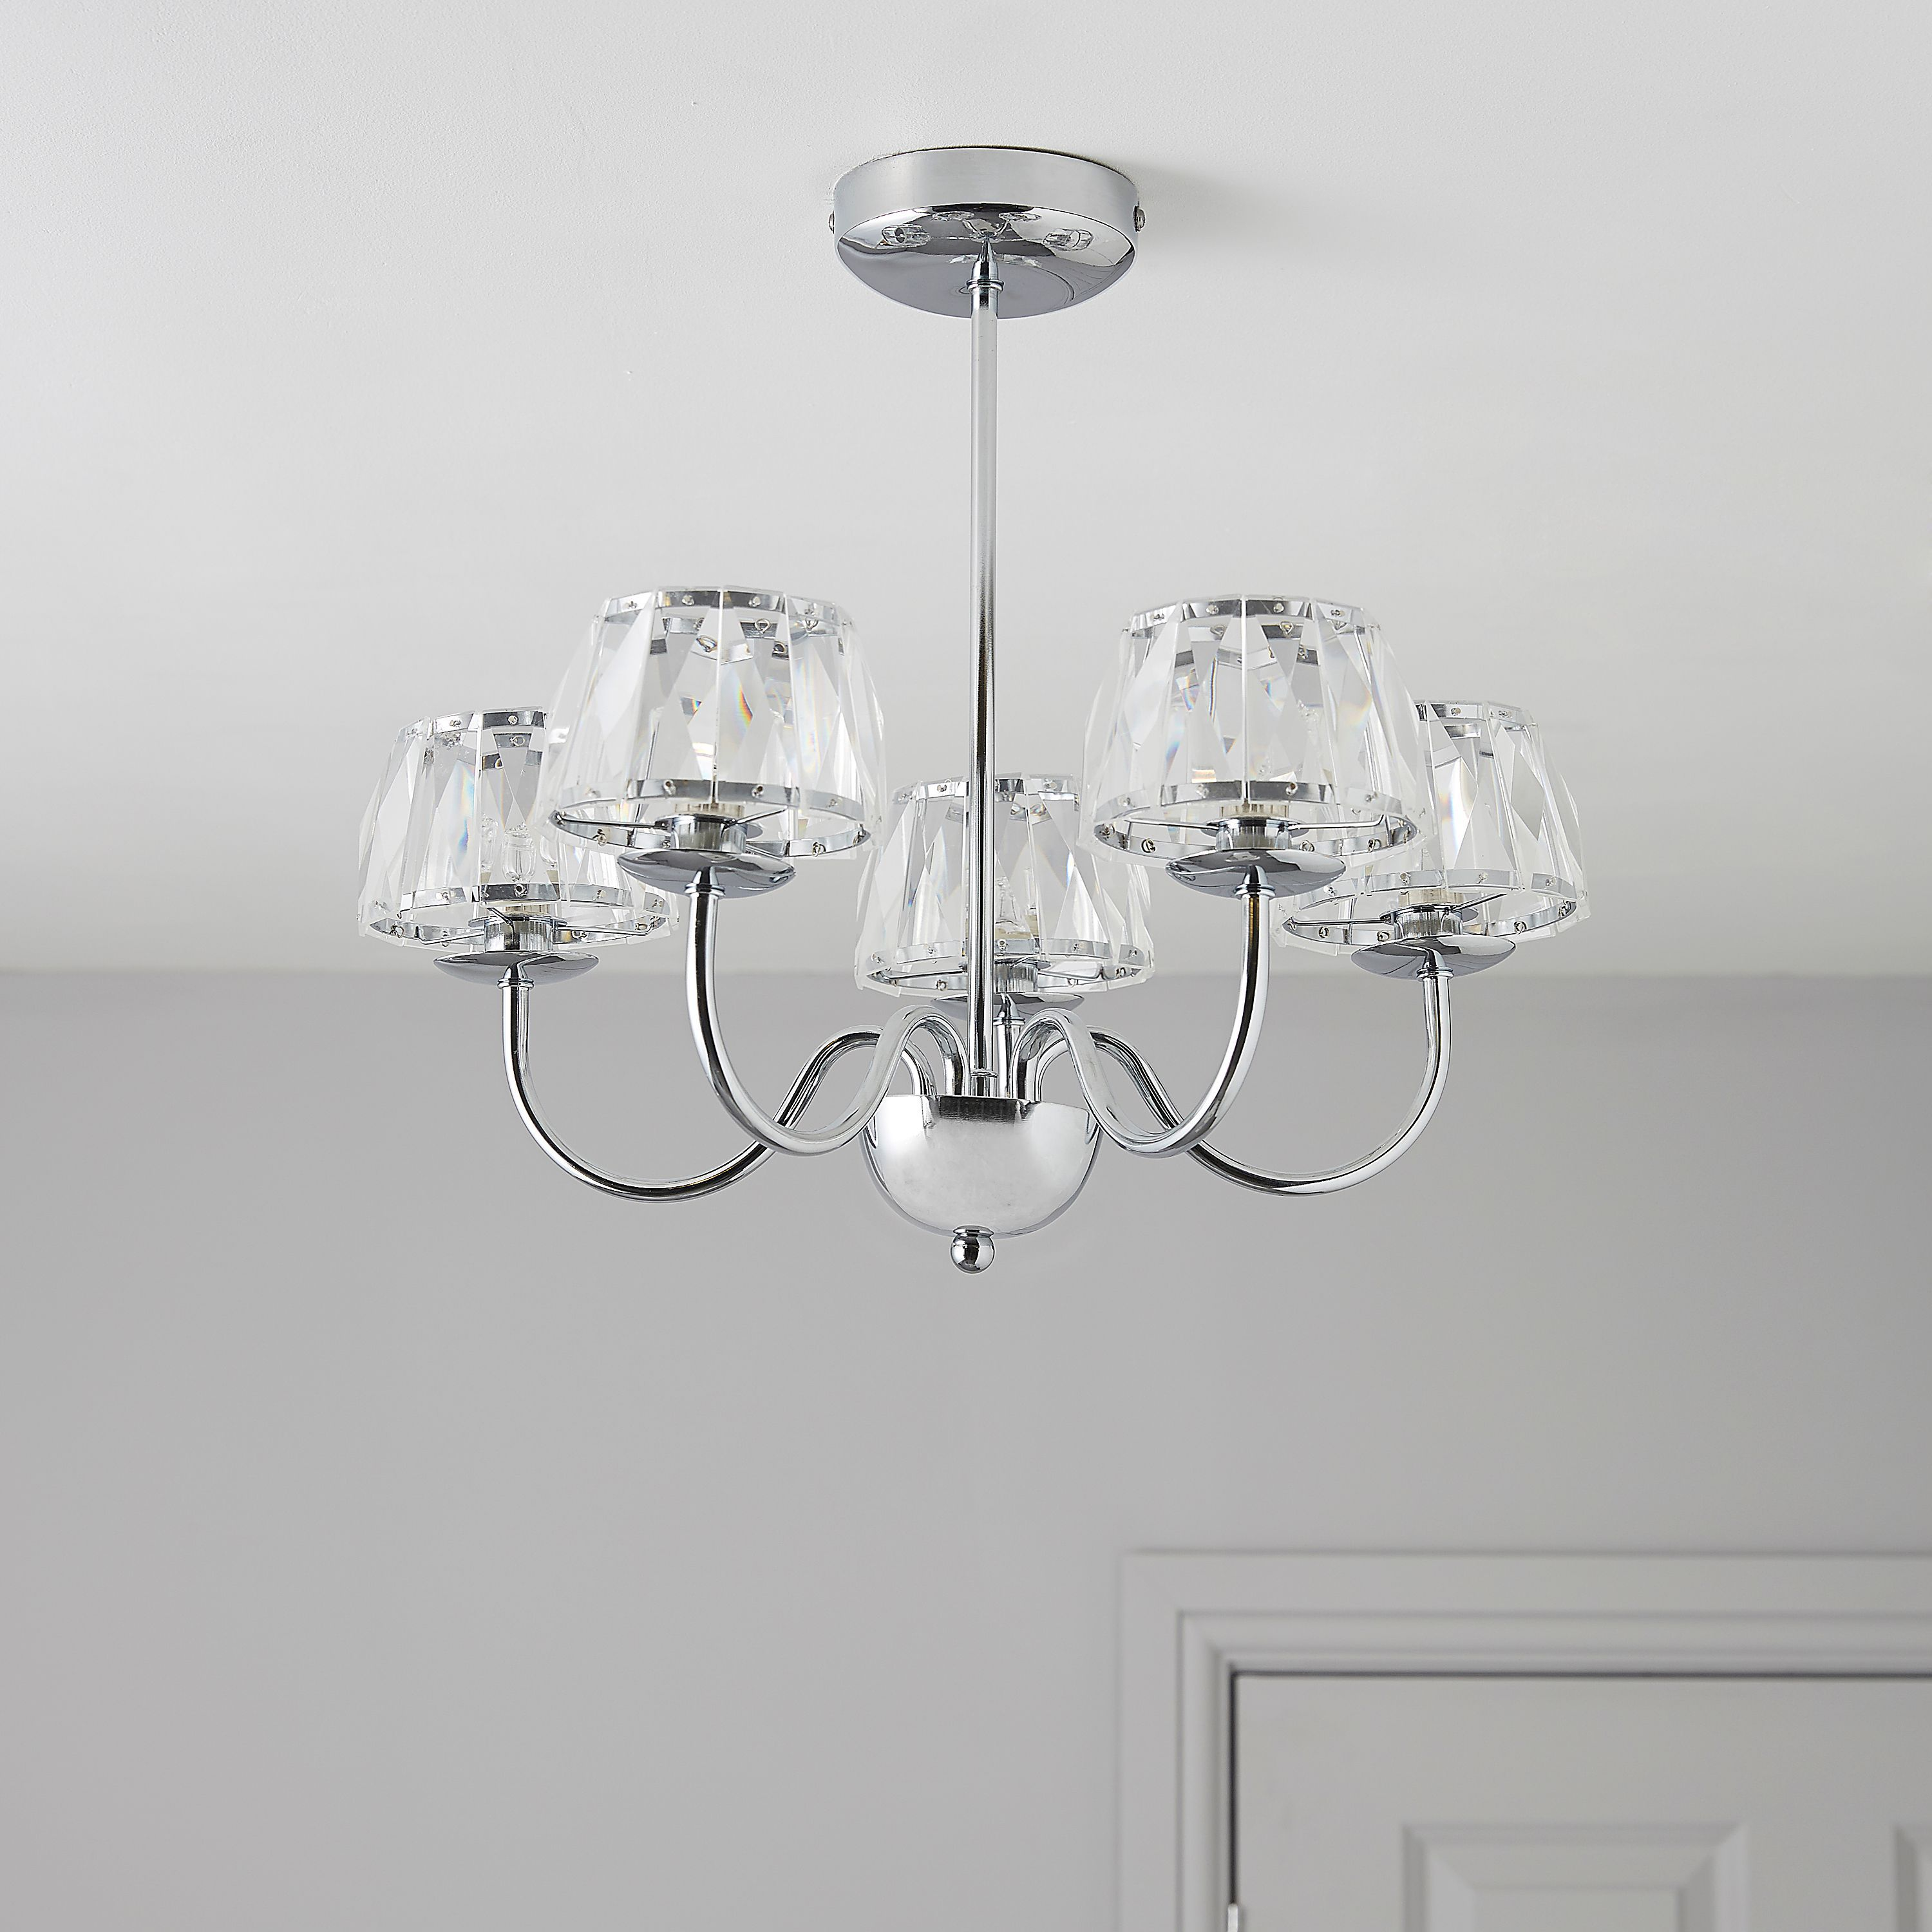 Waldor Faceted Glass Silver Chrome Effect 5 Lamp Ceiling Light ...